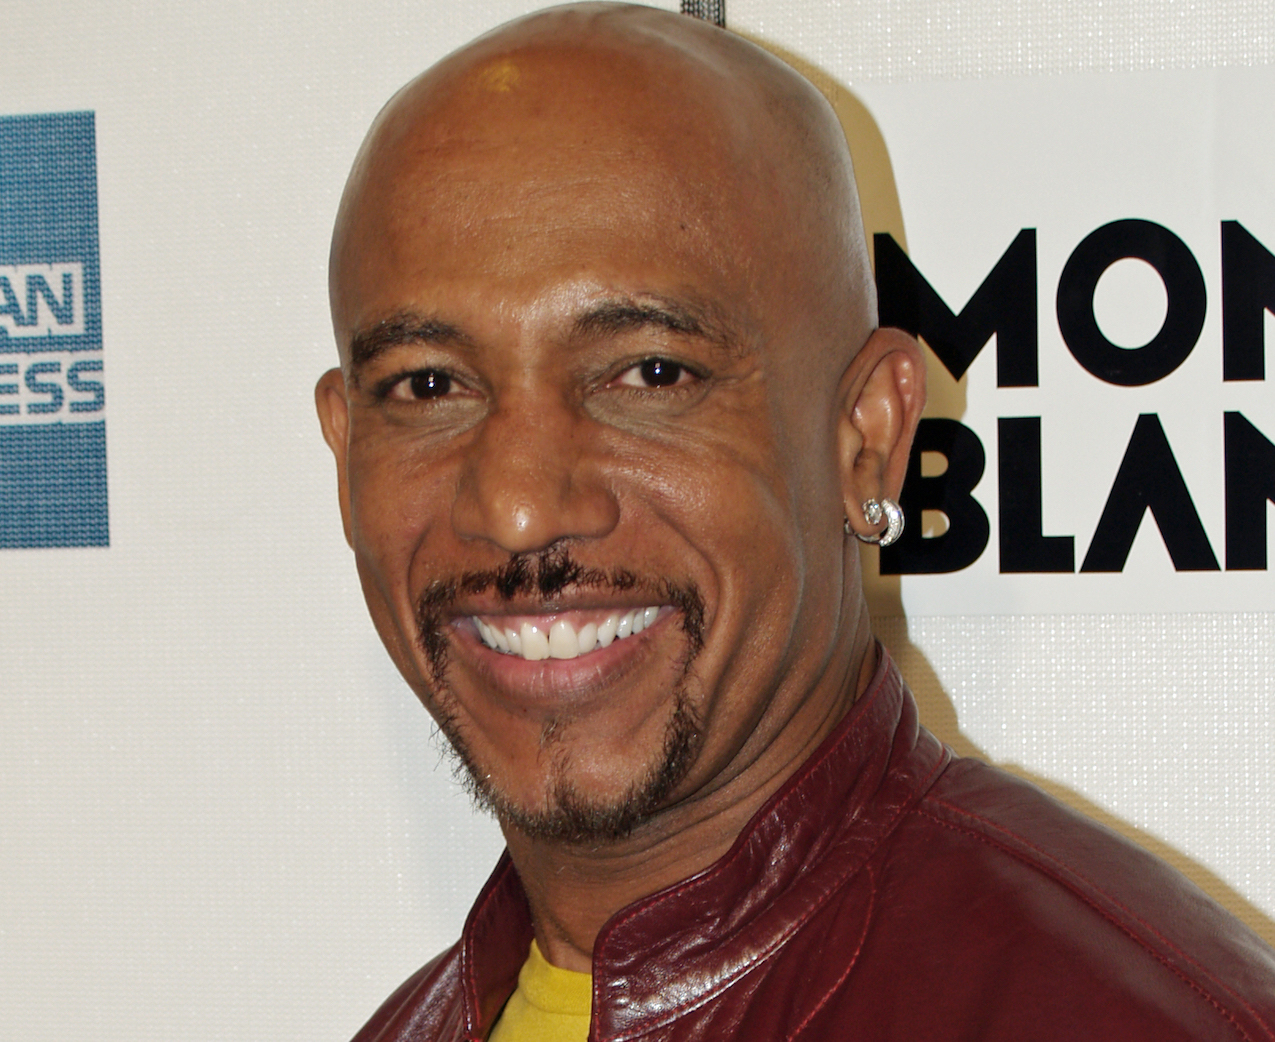 Television Personality Montel Williams: Multiple Sclerosis and the Talk Show Host